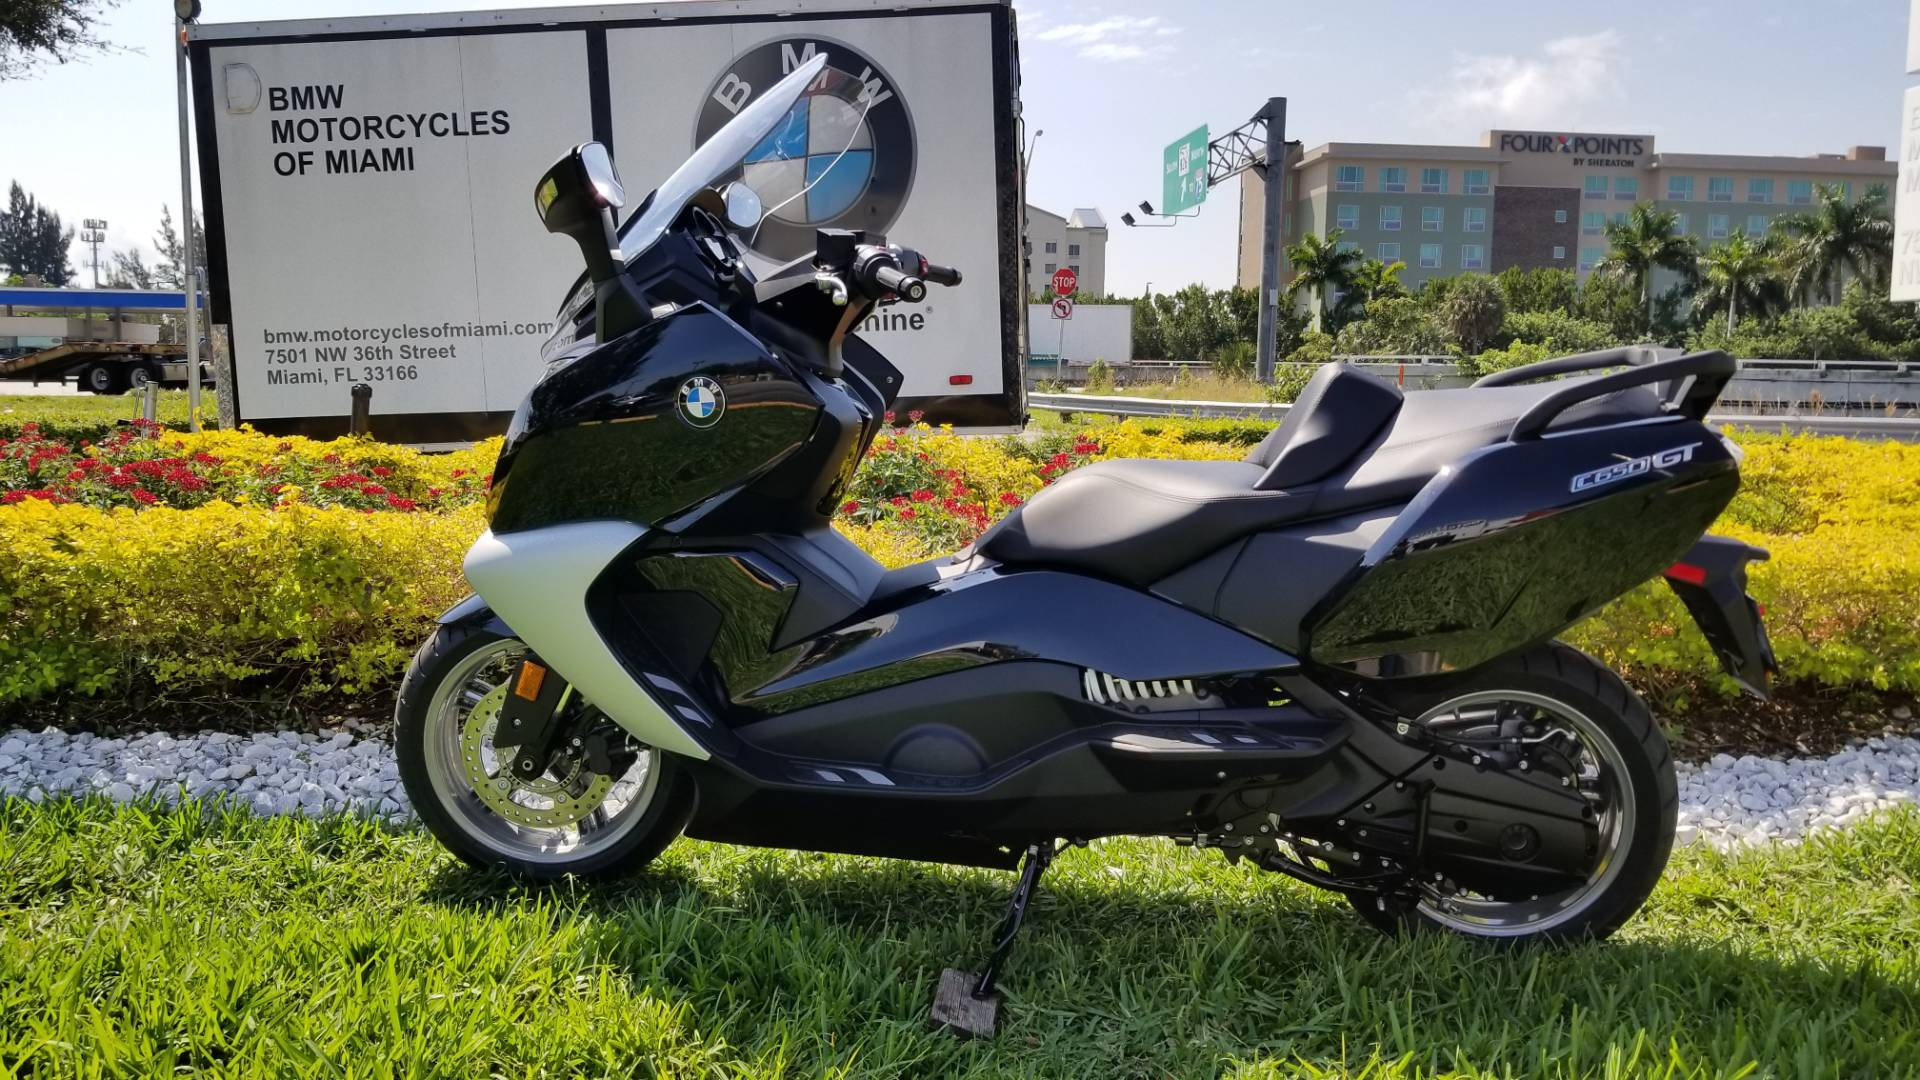 New 2019 BMW C 650 GT for sale, BMW C 650GT for sale, BMW Motorcycle C650GT, new BMW Scooter, Maxi Scooter, BMW. BMW Motorcycles of Miami, Motorcycles of Miami, Motorcycles Miami, New Motorcycles, Used Motorcycles, pre-owned. #BMWMotorcyclesOfMiami #MotorcyclesOfMiami #MotorcyclesMiami - Photo 8